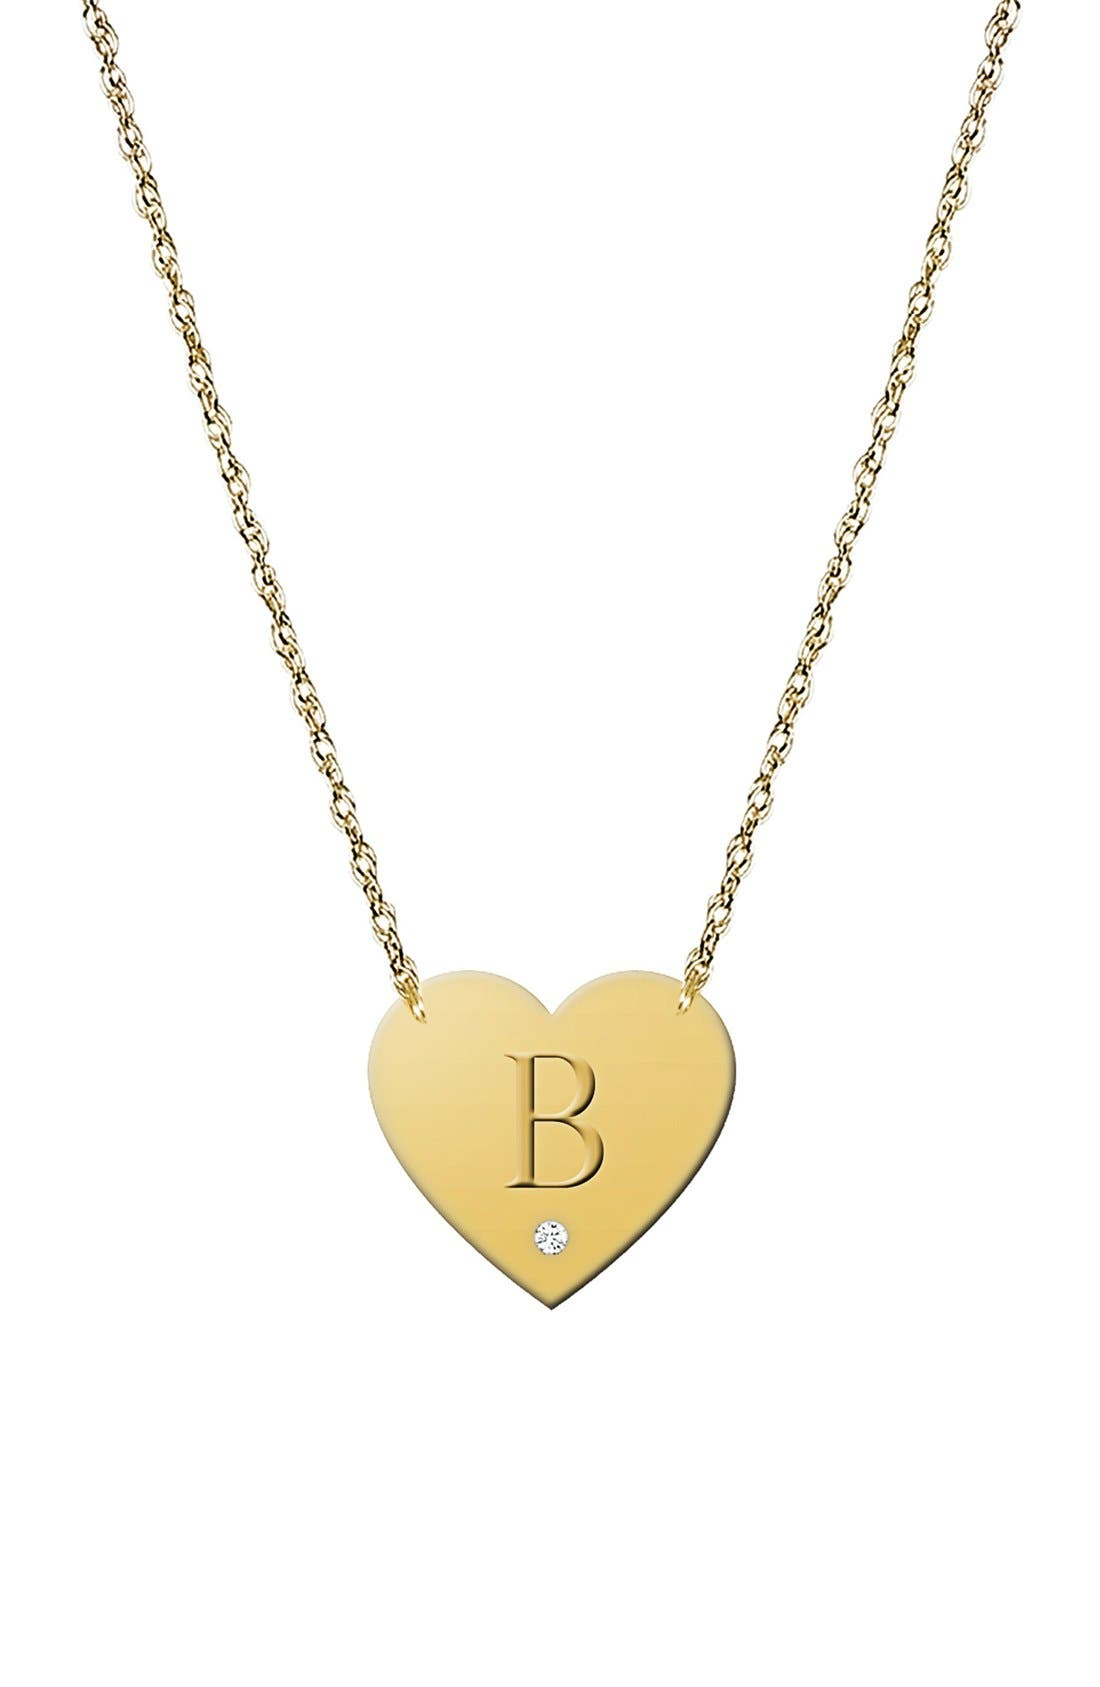 Alternate Image 1 Selected - Jane Basch Designs Diamond & Initial Pendant Necklace (Nordstrom Online Exclusive)